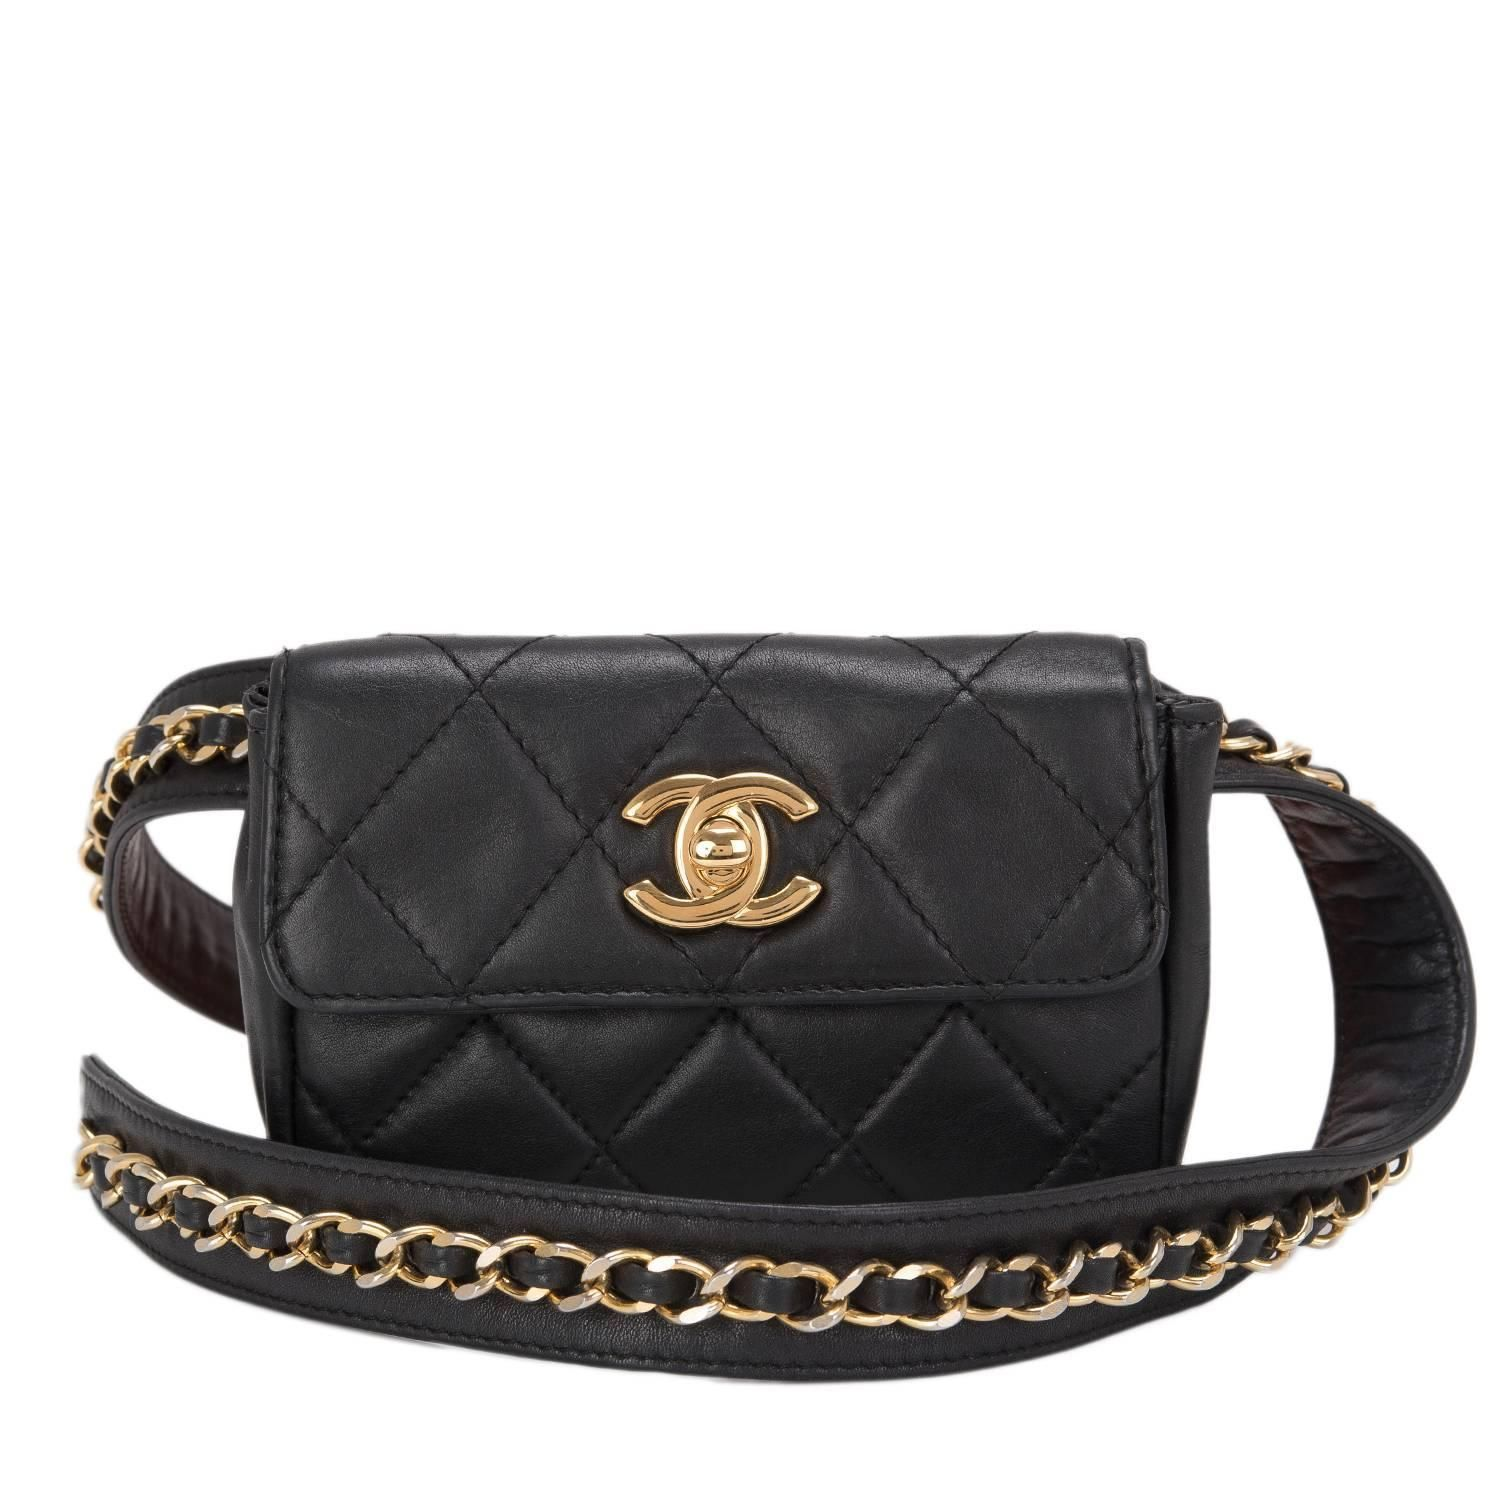 58d9393f3 Chanel Vintage Black Quilted Lambskin Iconic Chained Fanny Pack ...